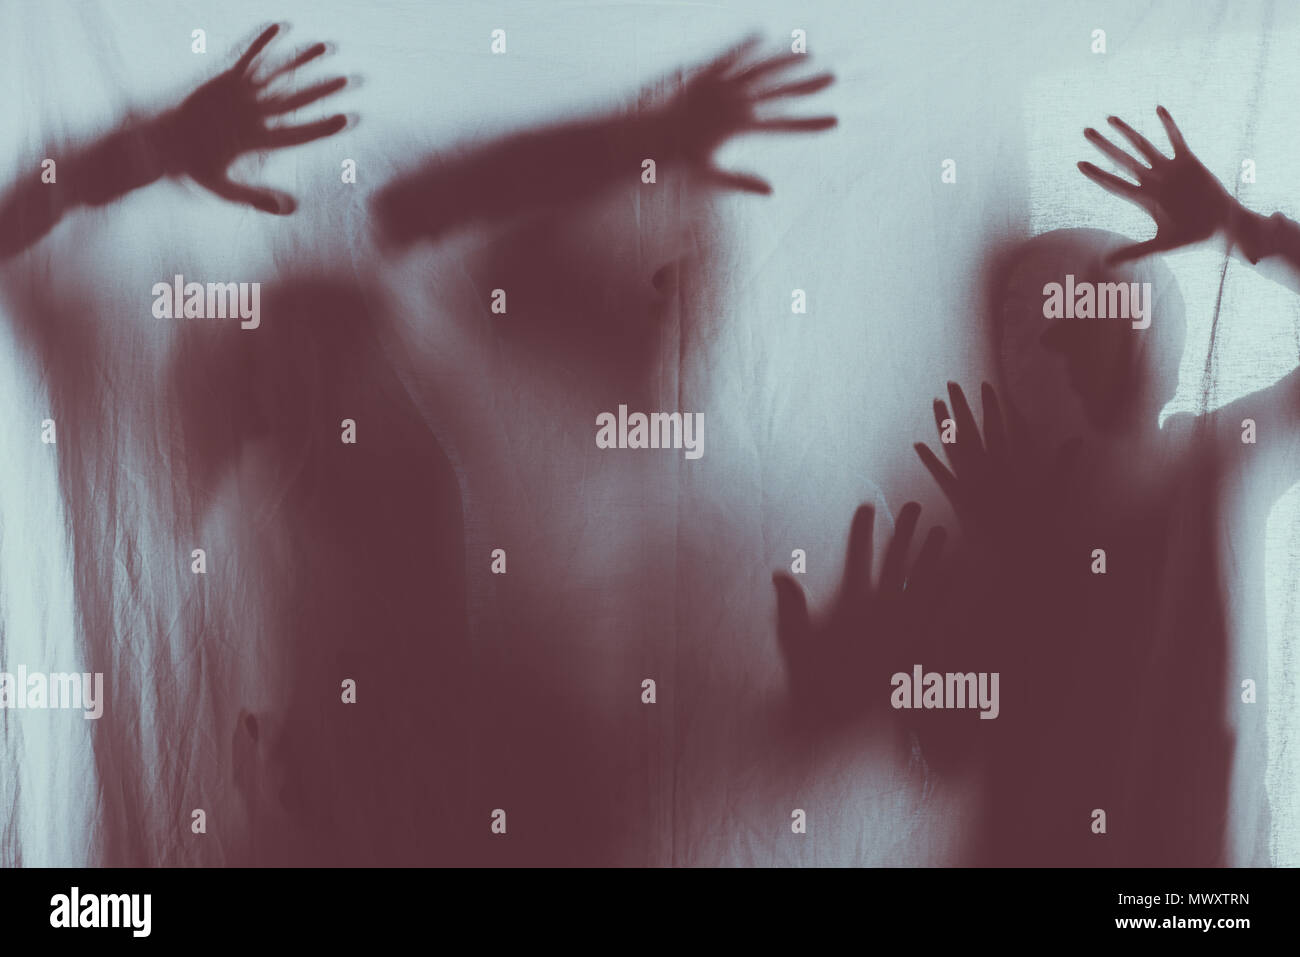 blurry scary silhouettes of people touching frosted glass with hands - Stock Image